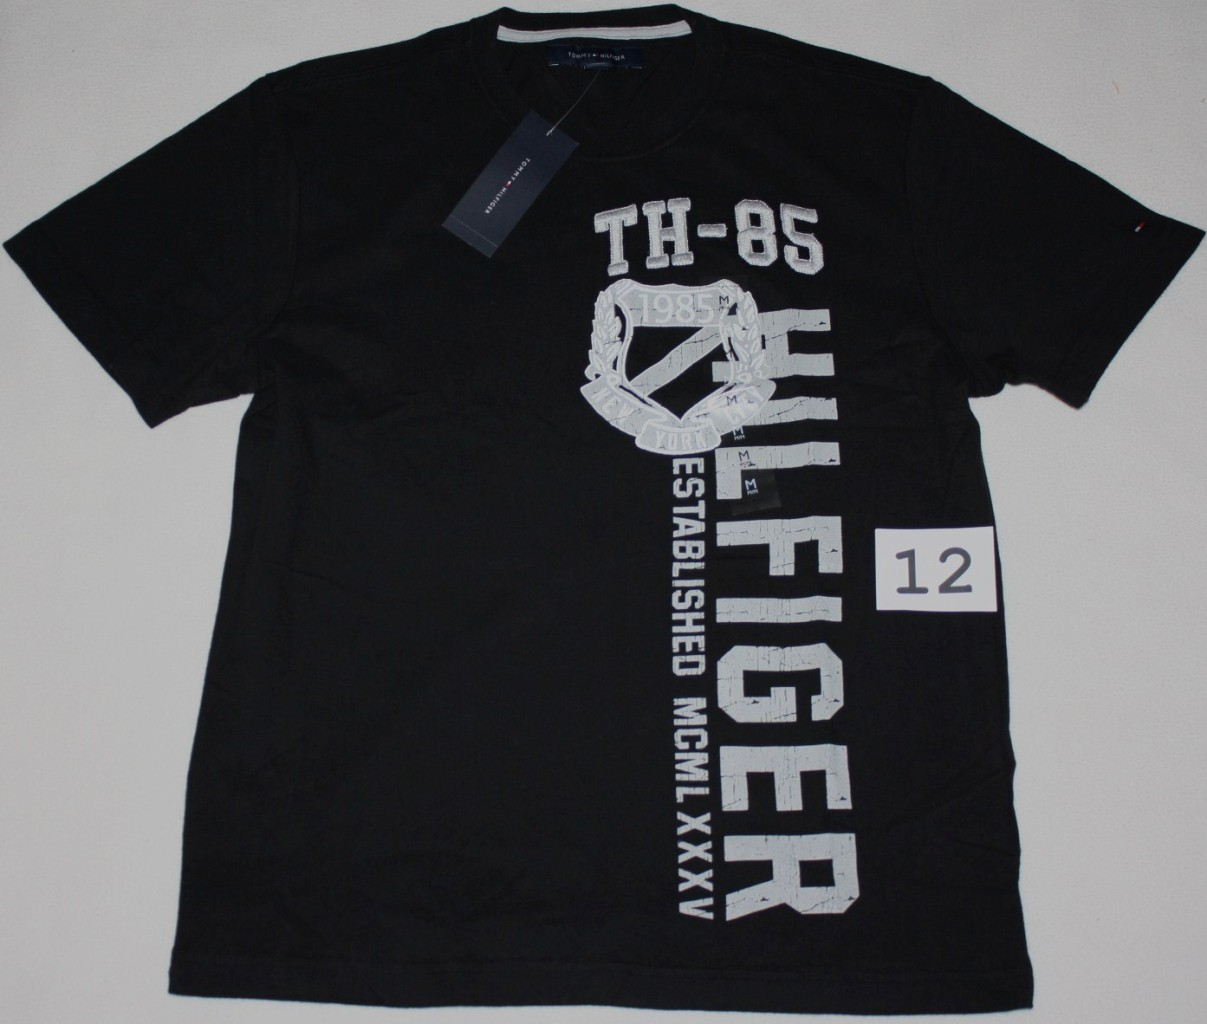 nwt tommy hilfiger men 39 s graphic t shirt tee shirt s m l xl sale ebay. Black Bedroom Furniture Sets. Home Design Ideas